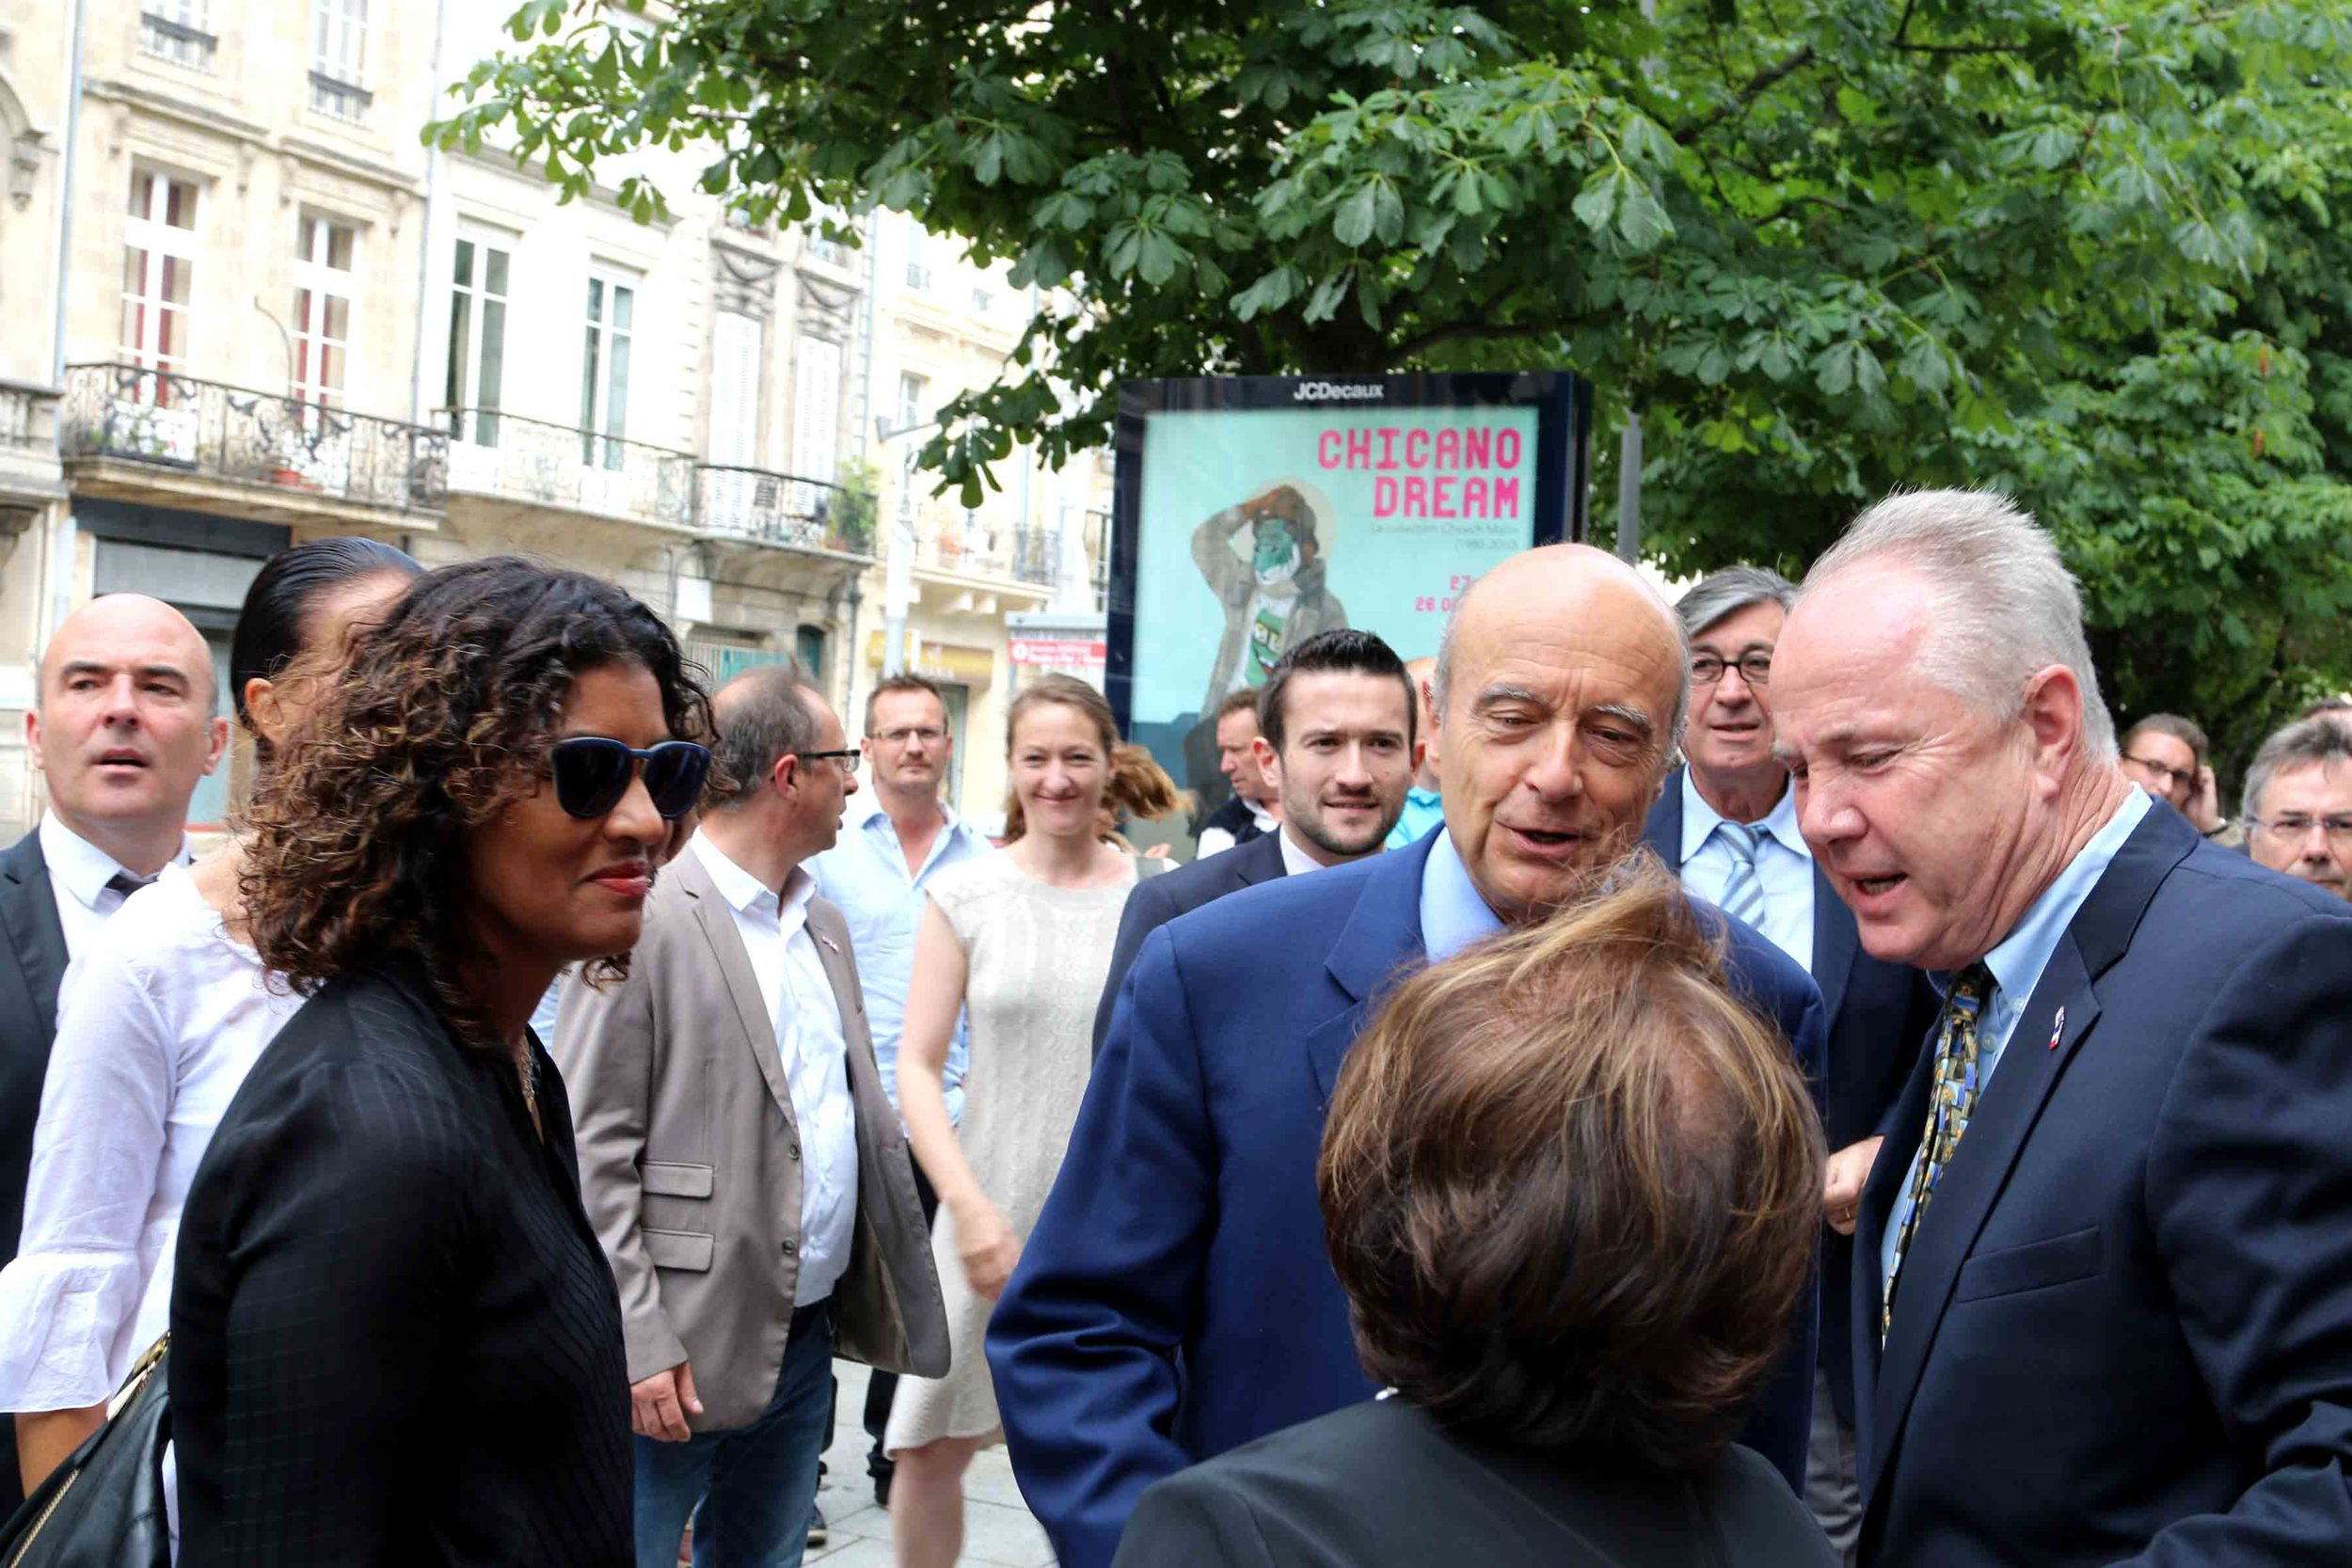 Kamilla Blanche, Mayor of Bordeaux, Alain Juppé and Councilmember Tom LaBonge arrive at the Museé d'Aquitaine.